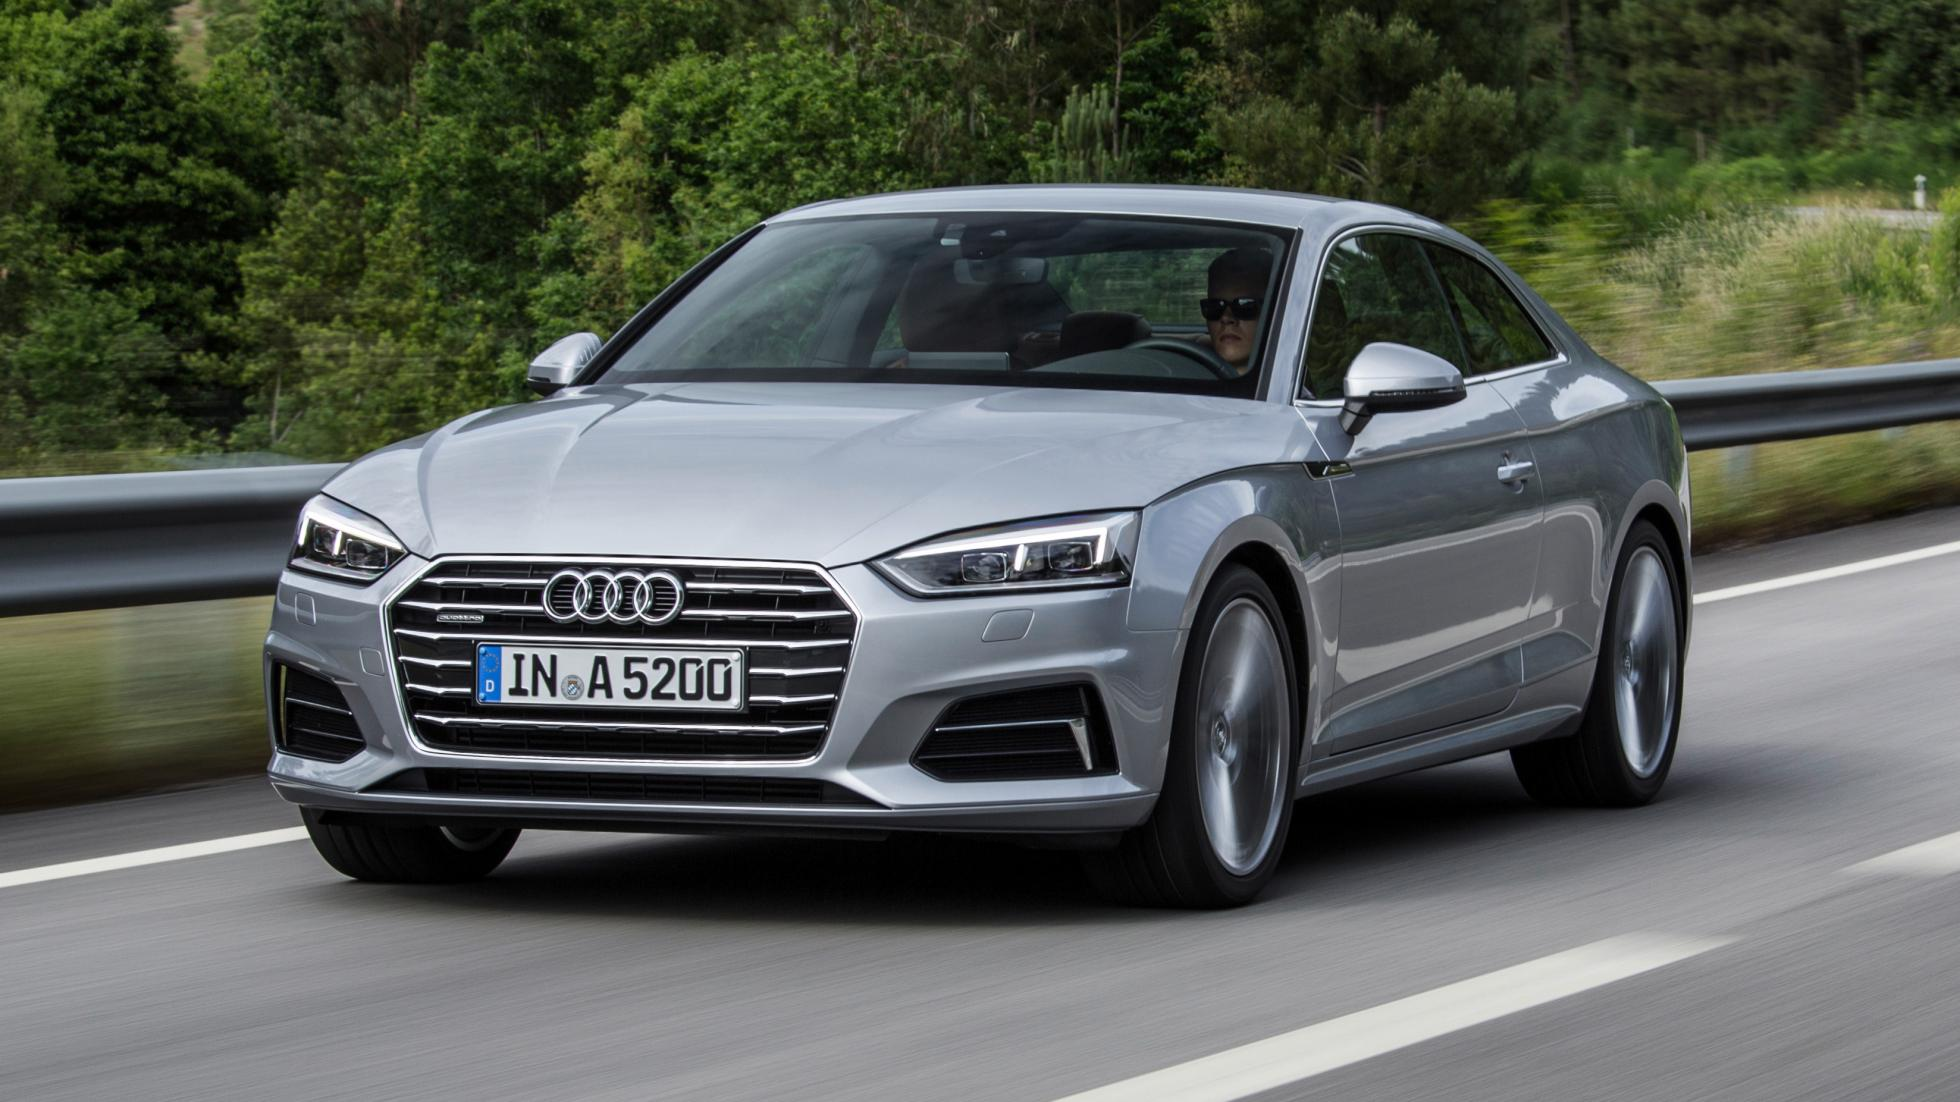 Audi A5 silver front